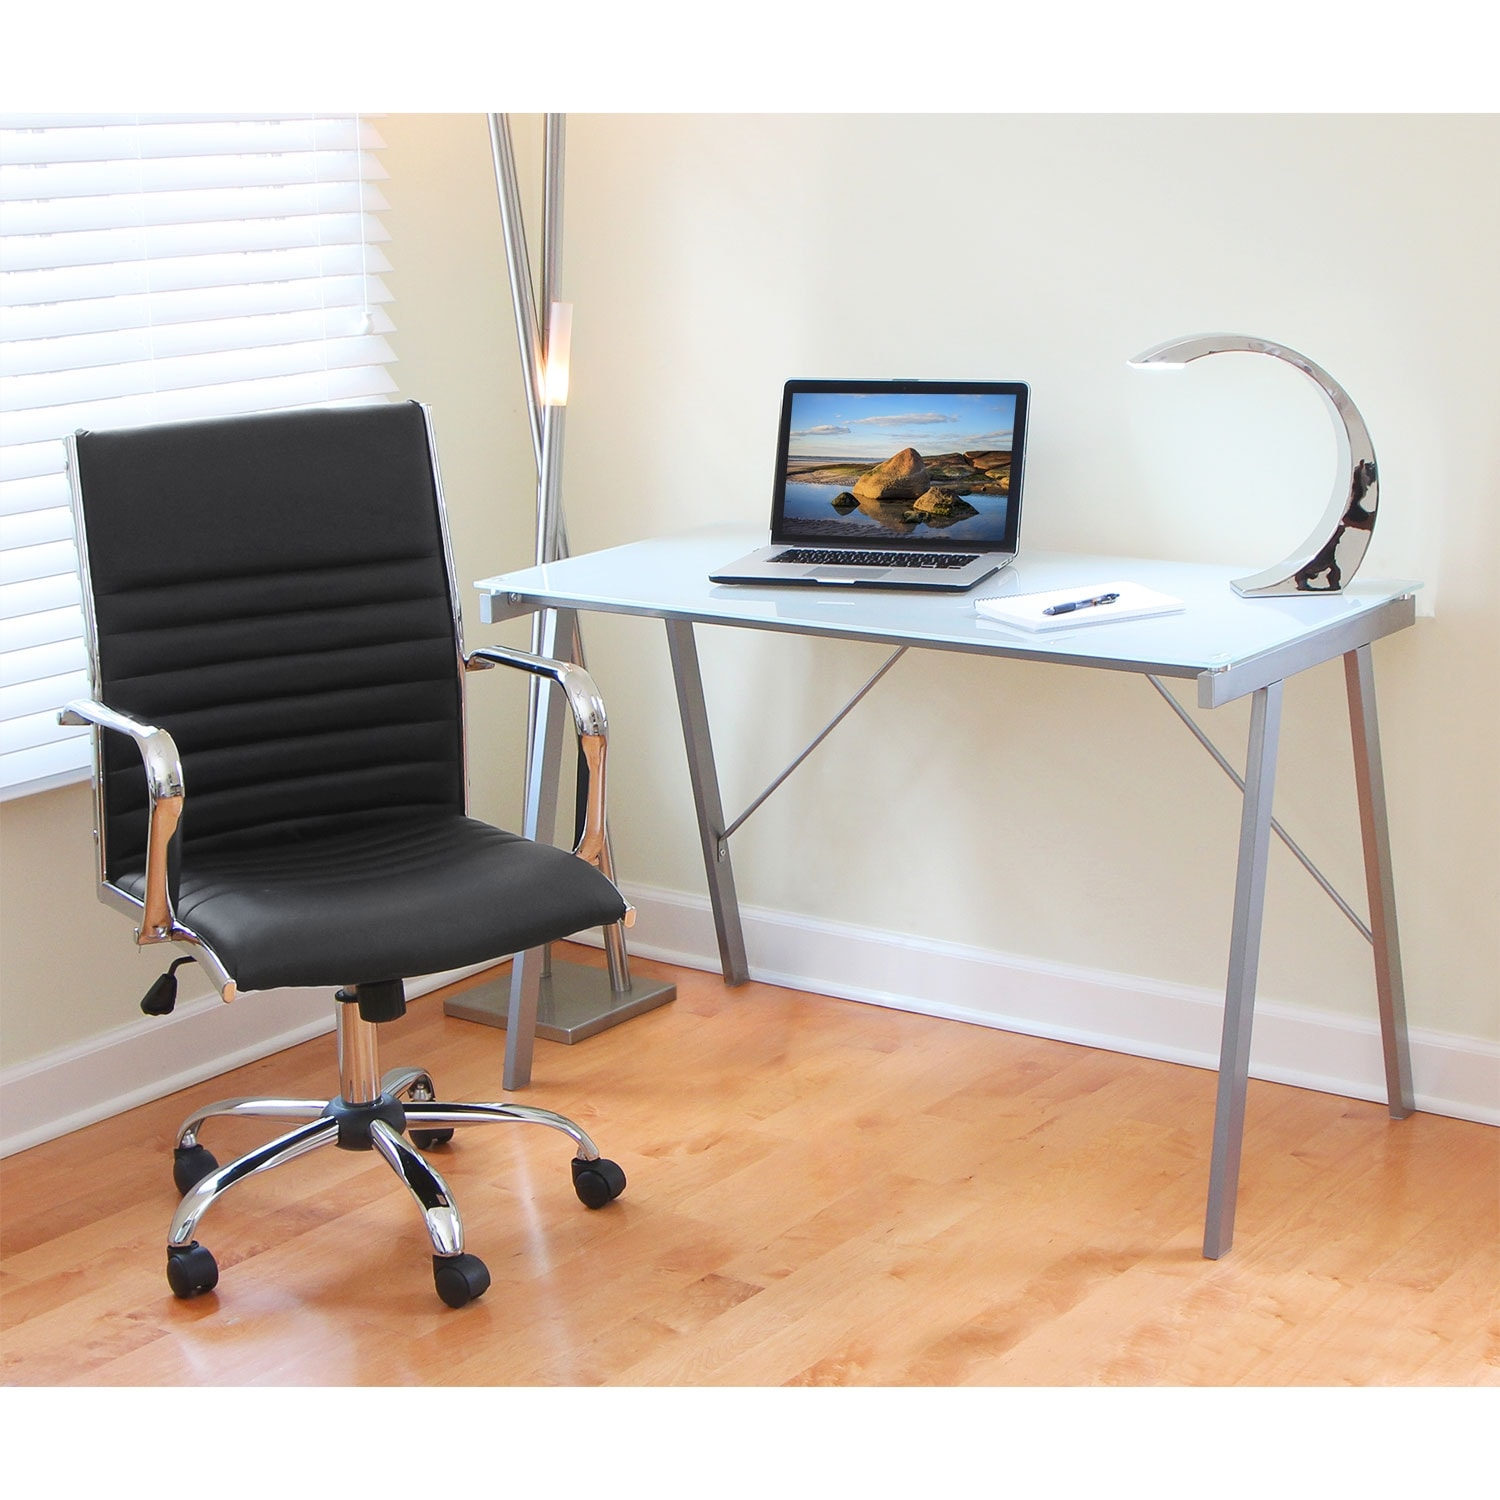 Director office arm chair black value city furniture - Value city office desk ...